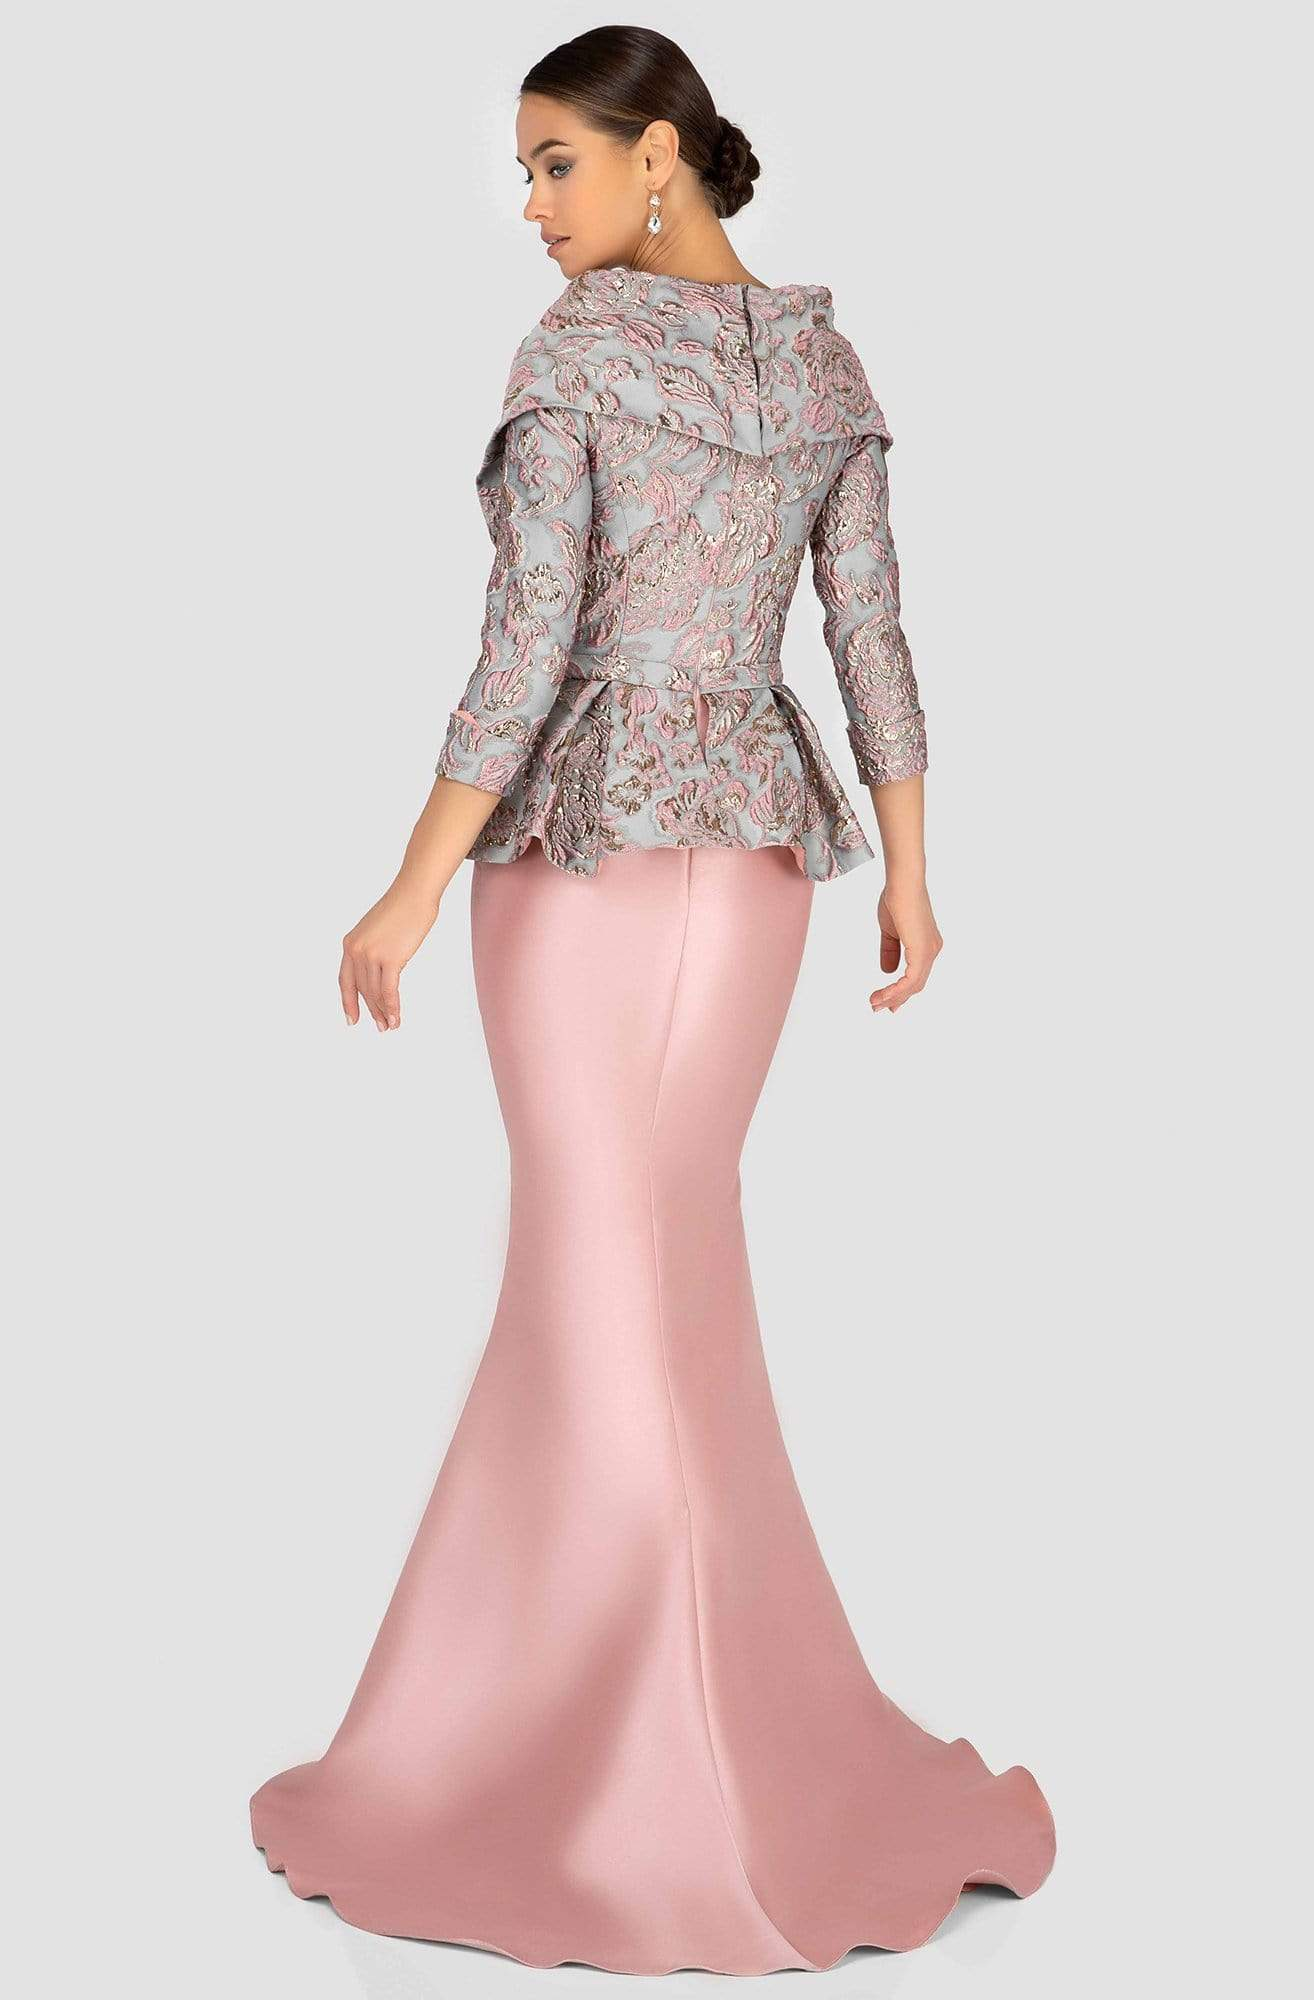 Terani Couture - 1911M9322 Embossed V-Neck Peplum Mermaid Gown In Pink and Gray